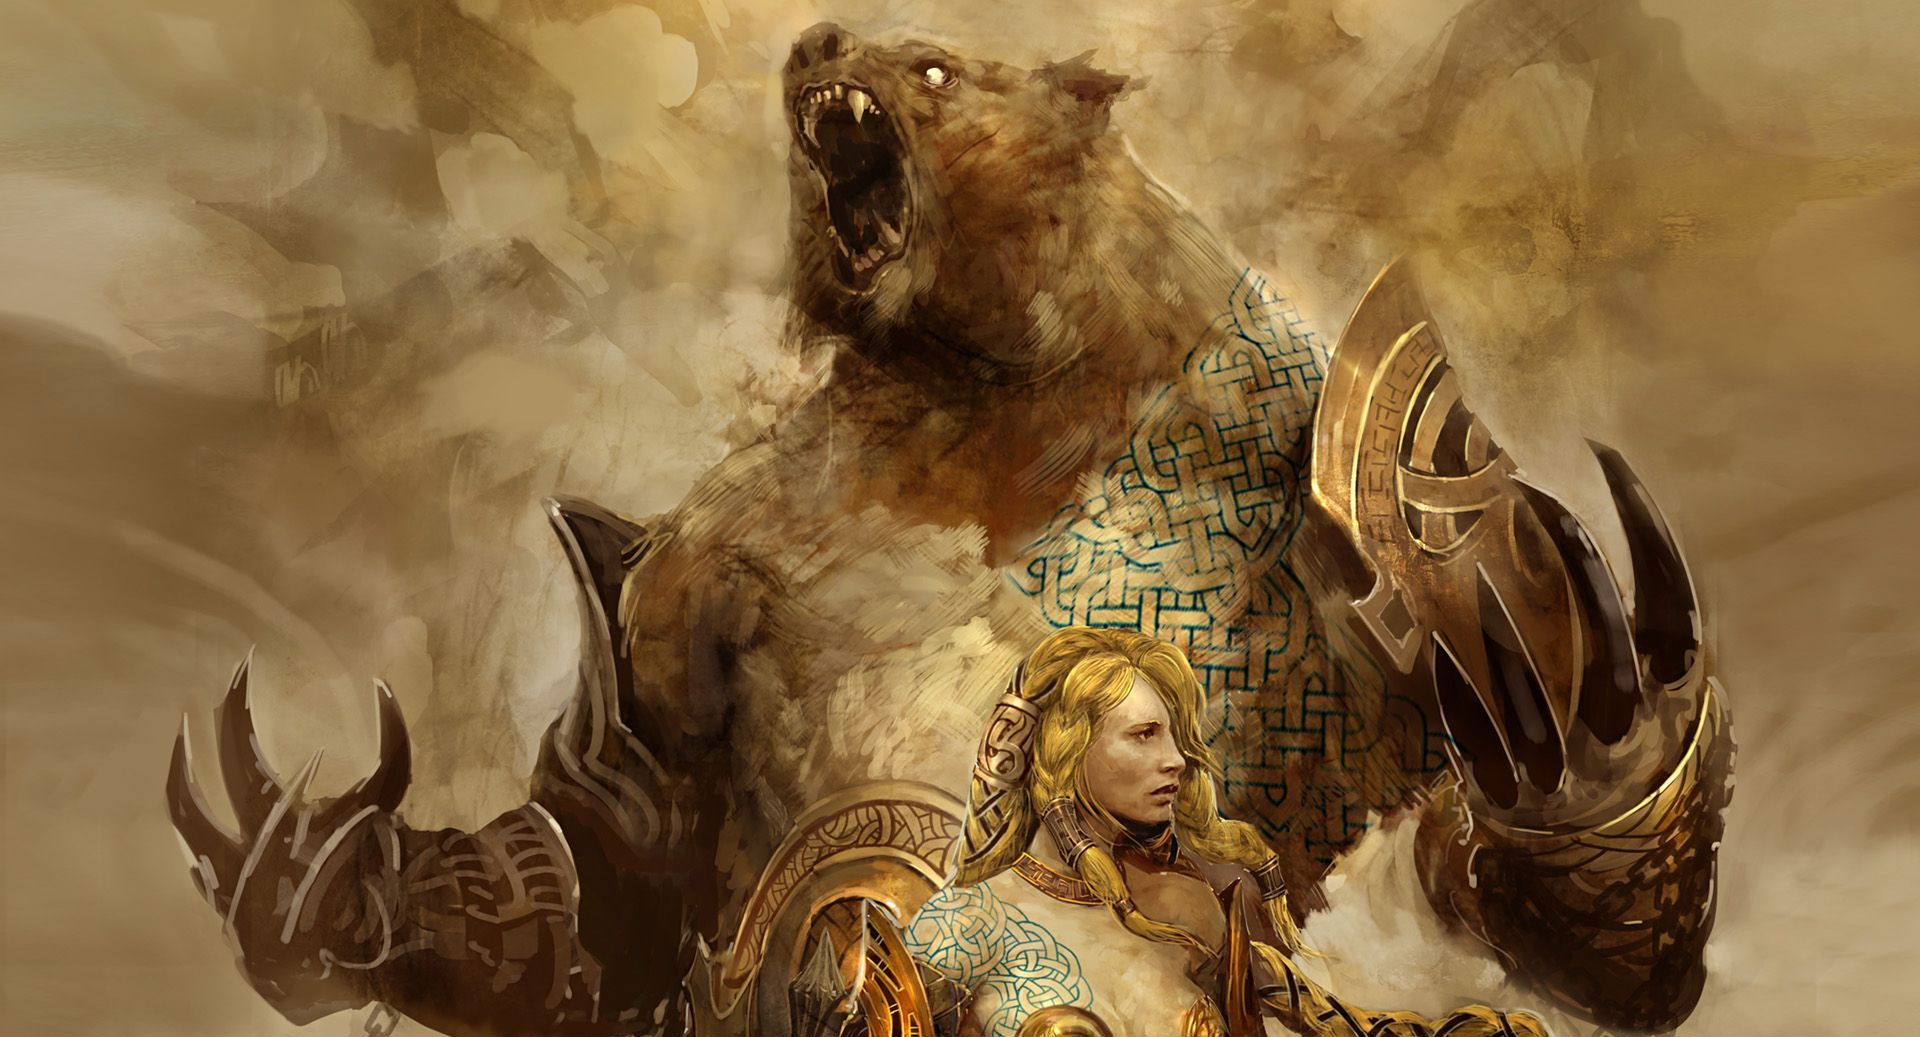 Guild Wars 2 Wallpaper and Background Image   1920x1037 ...